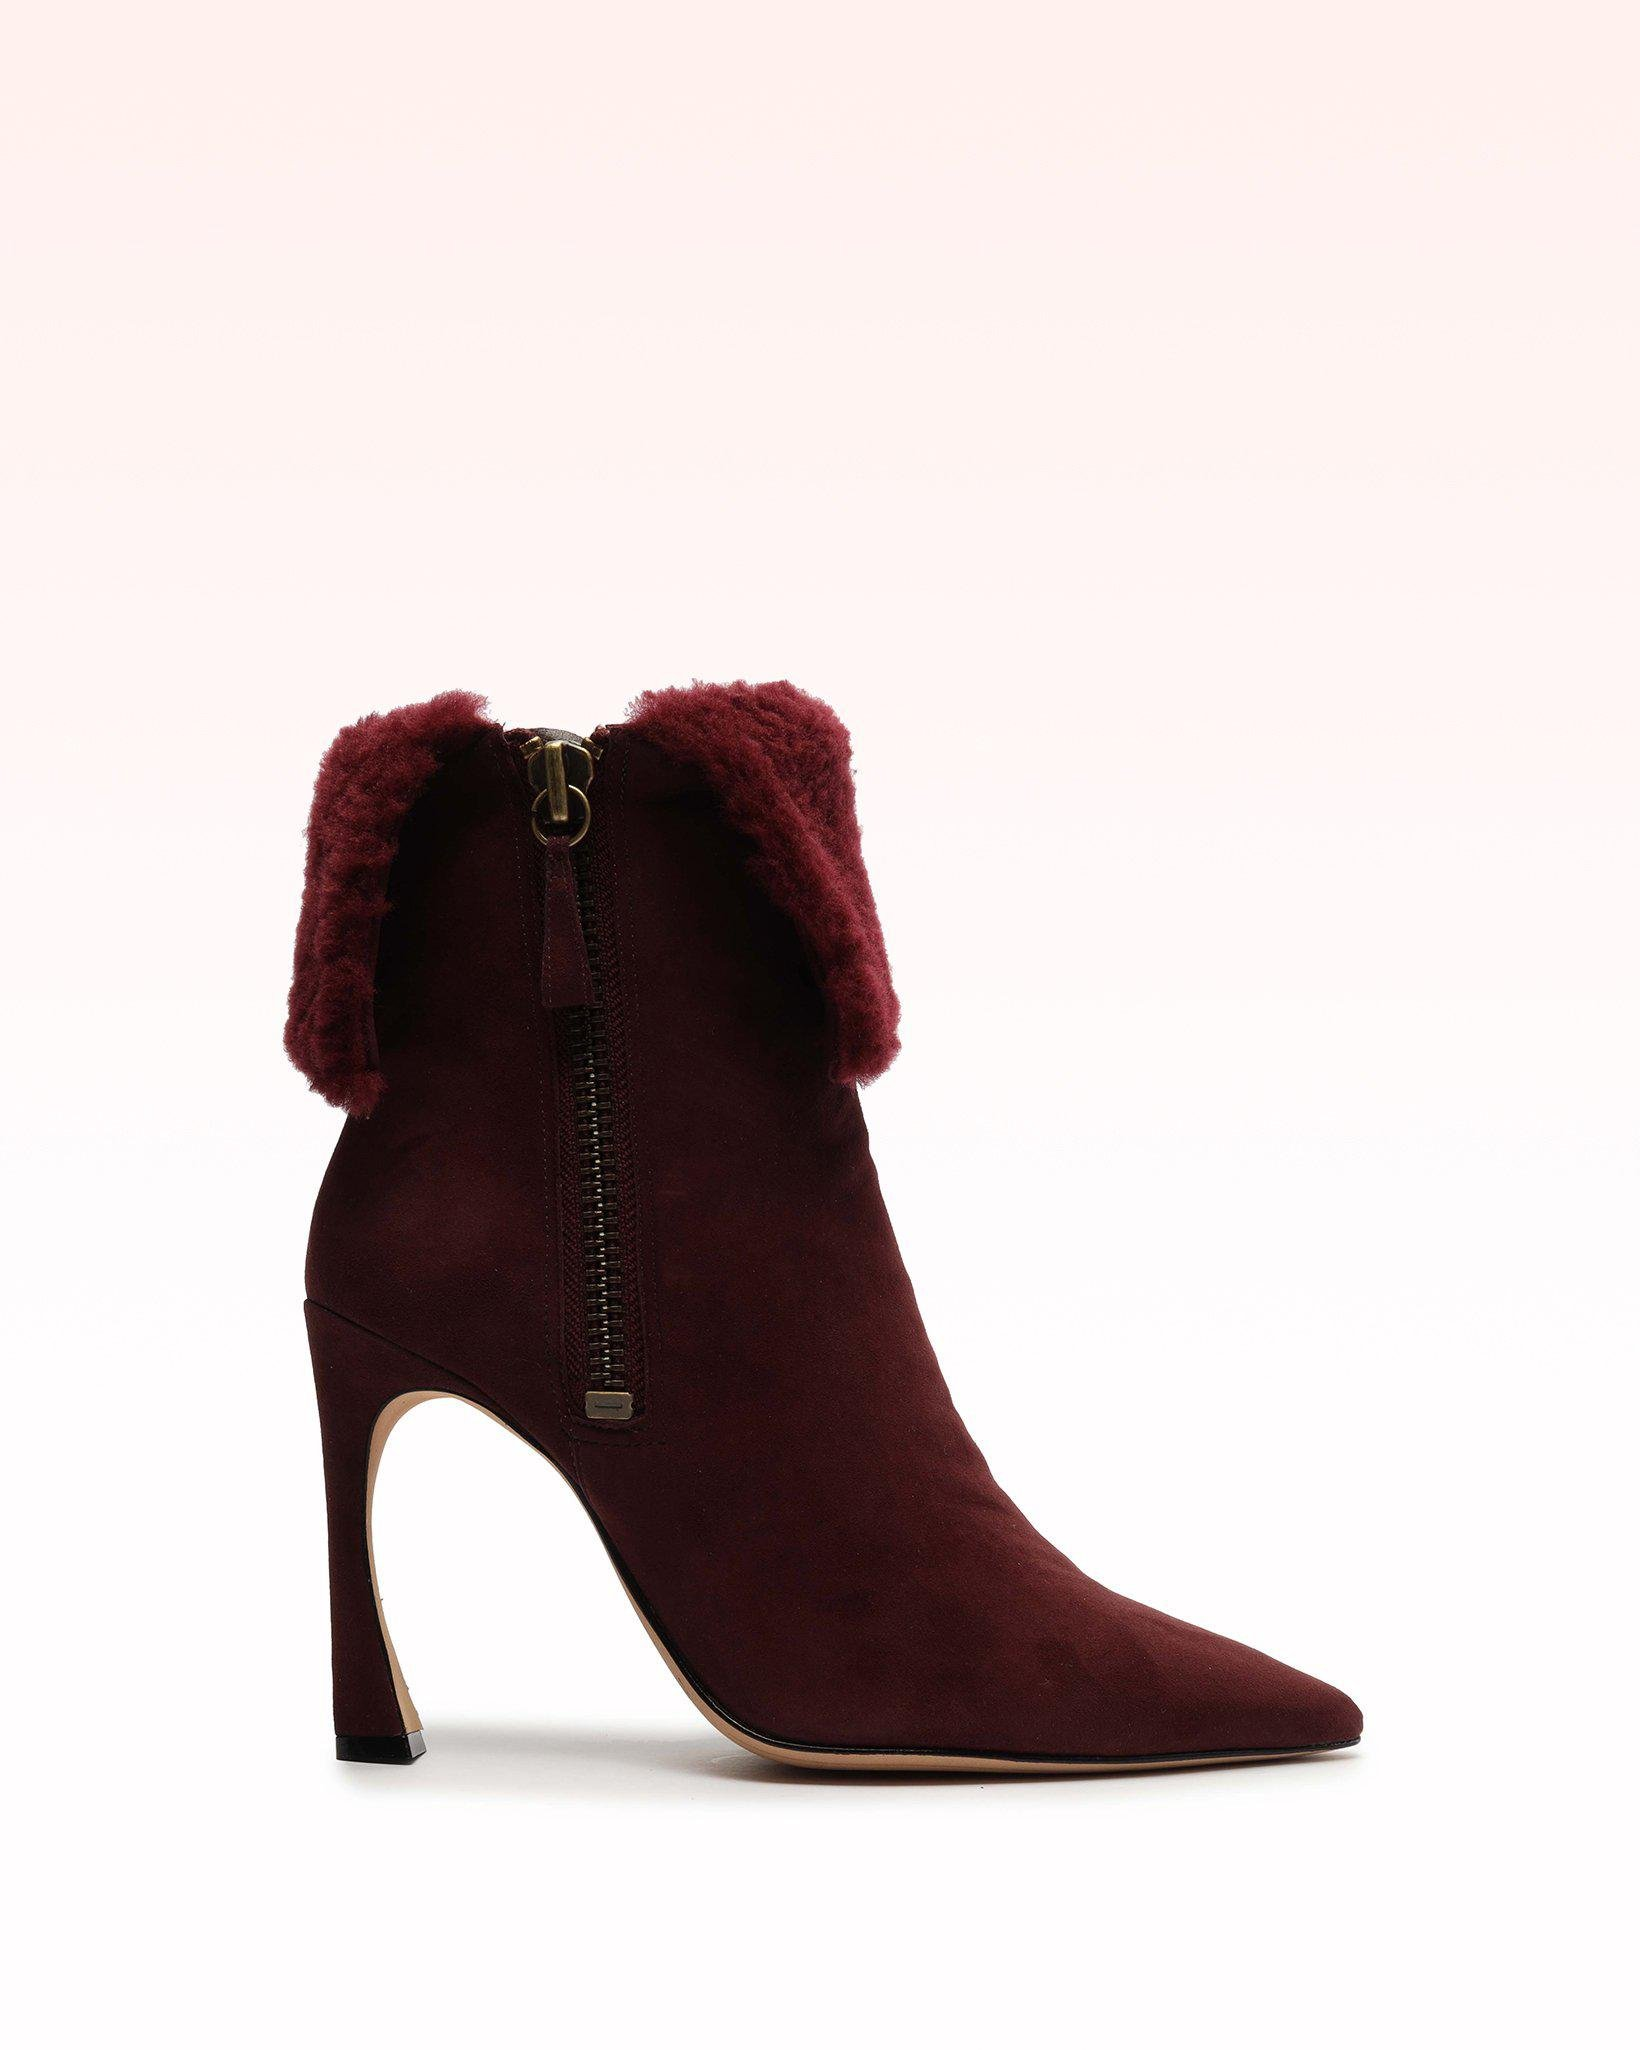 Mirabella 100 Curly Suede & Shearling Bootie